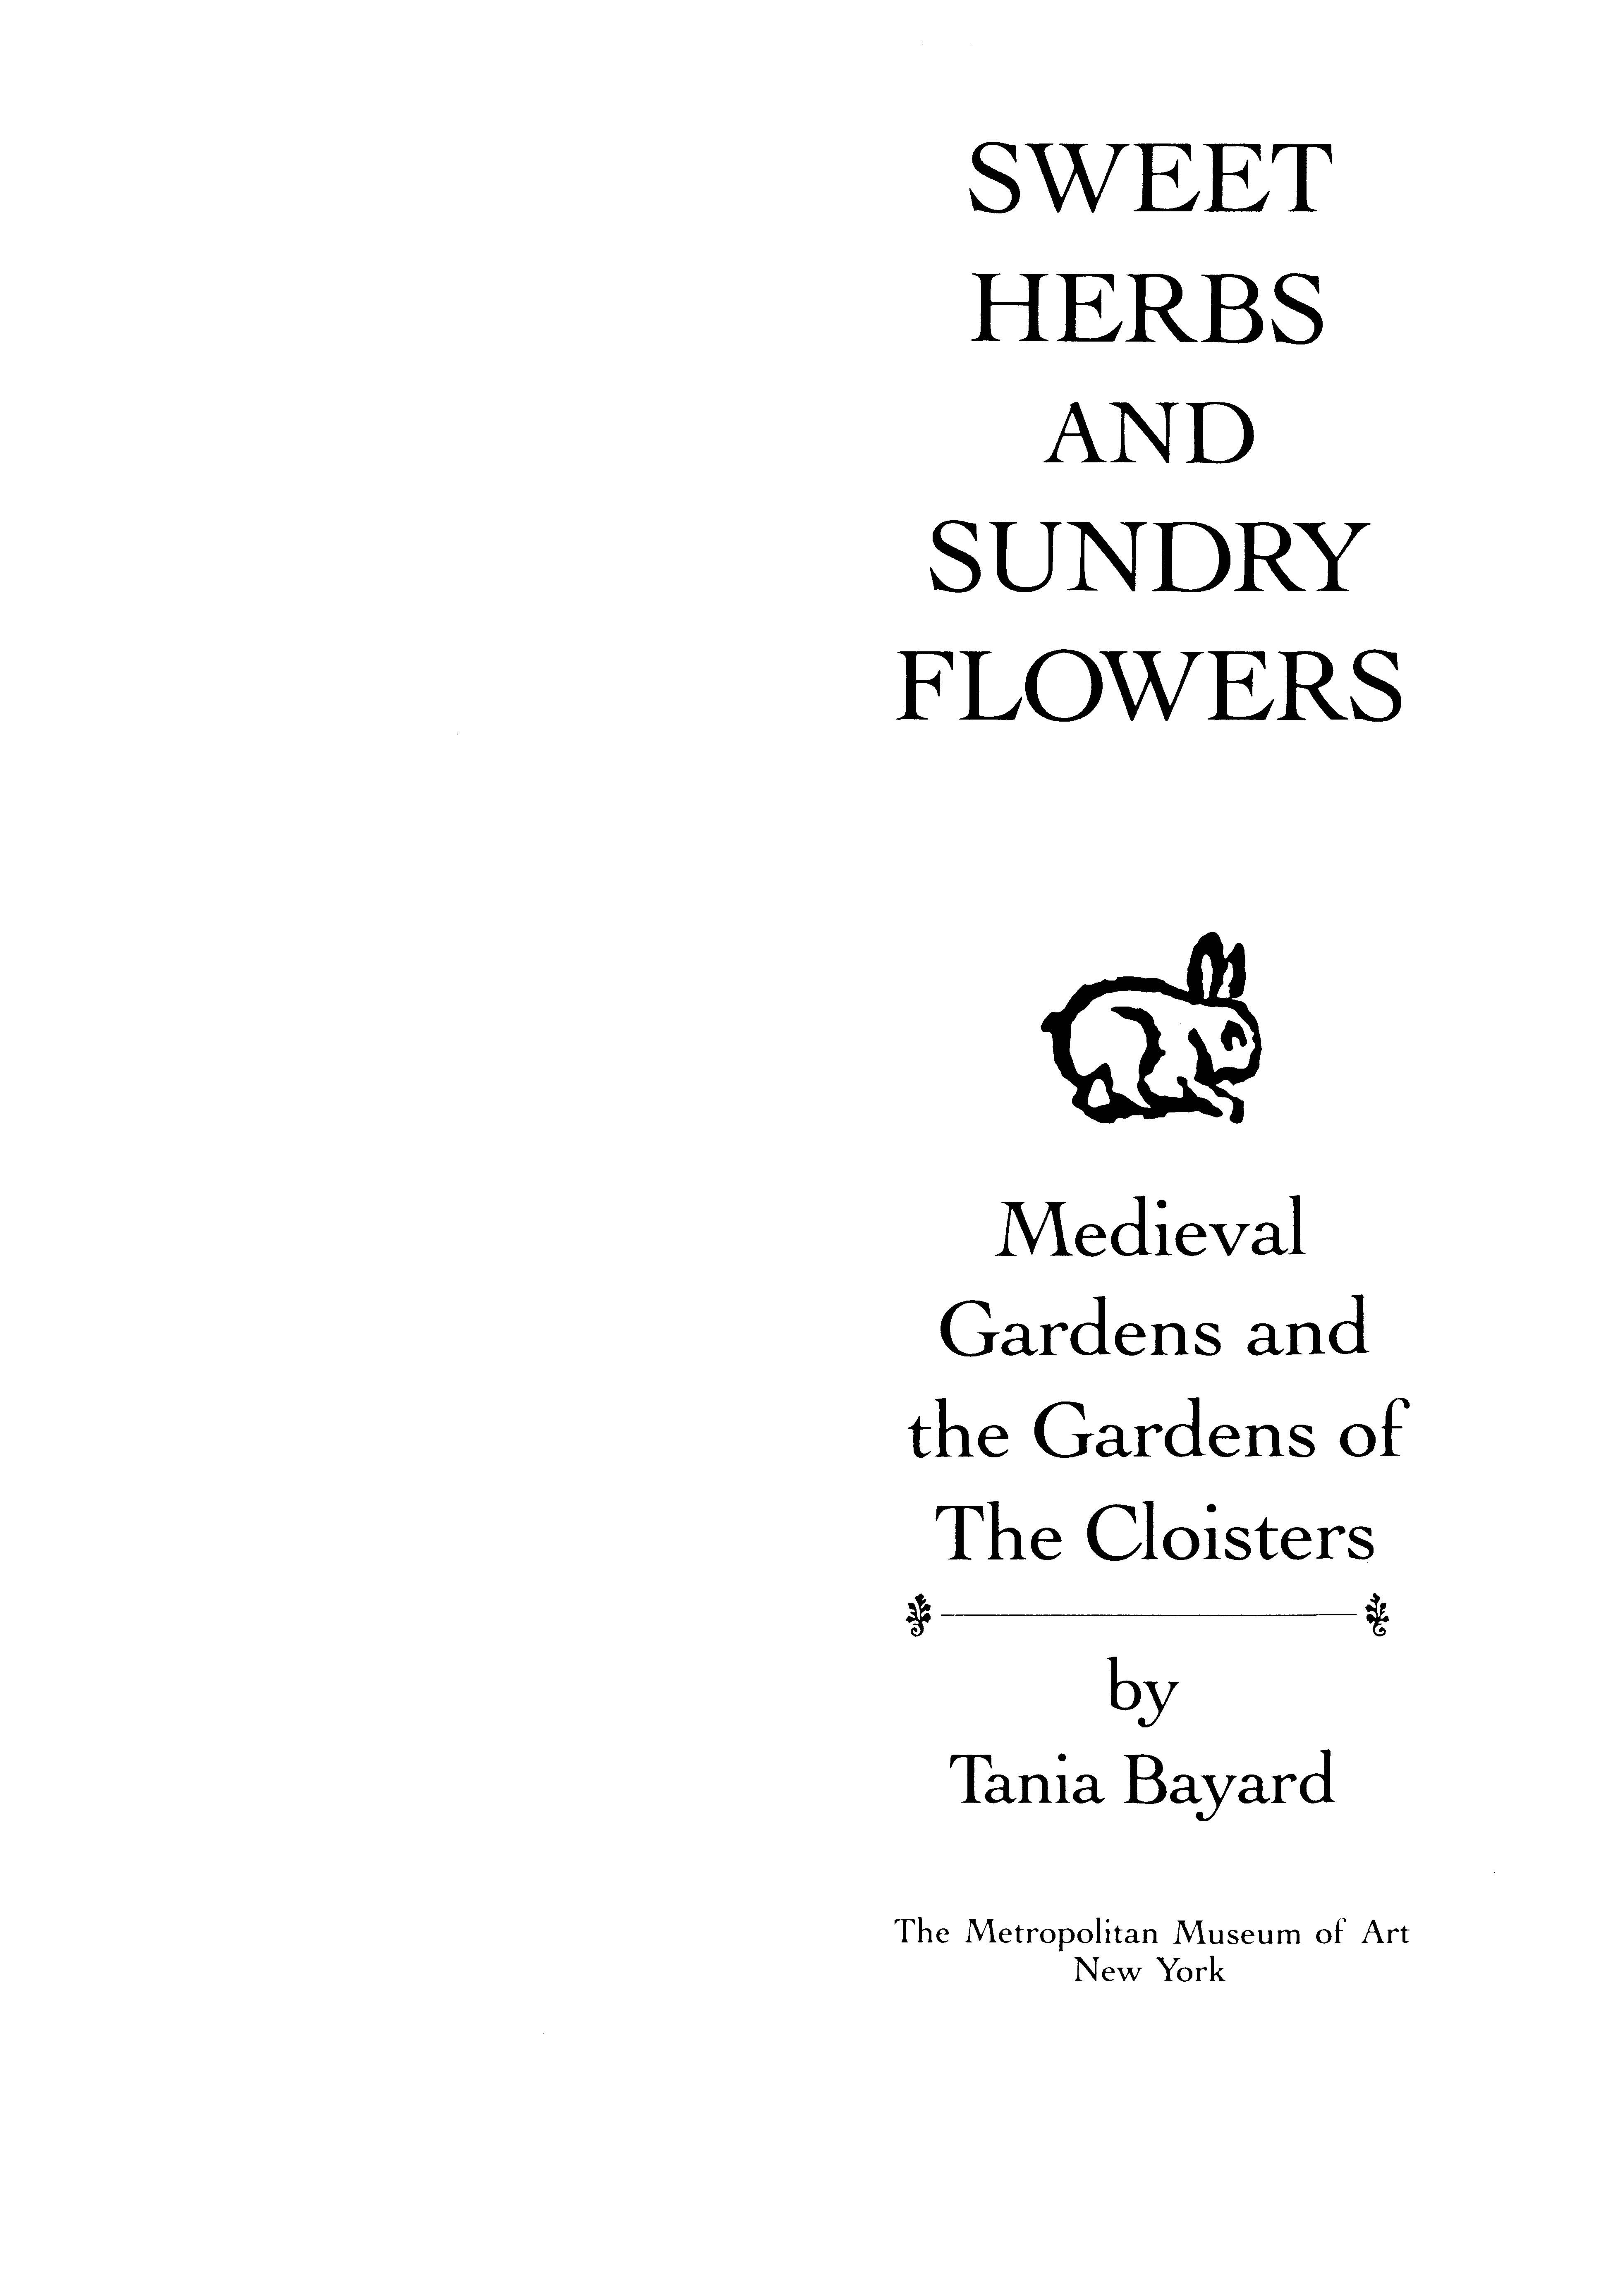 Sweet Herbs and Sundry Flowers: Medieval Gardens and the Gardens of The Cloisters / Tania Bayard. — New York : Metropolitan Museum of Art, 1997